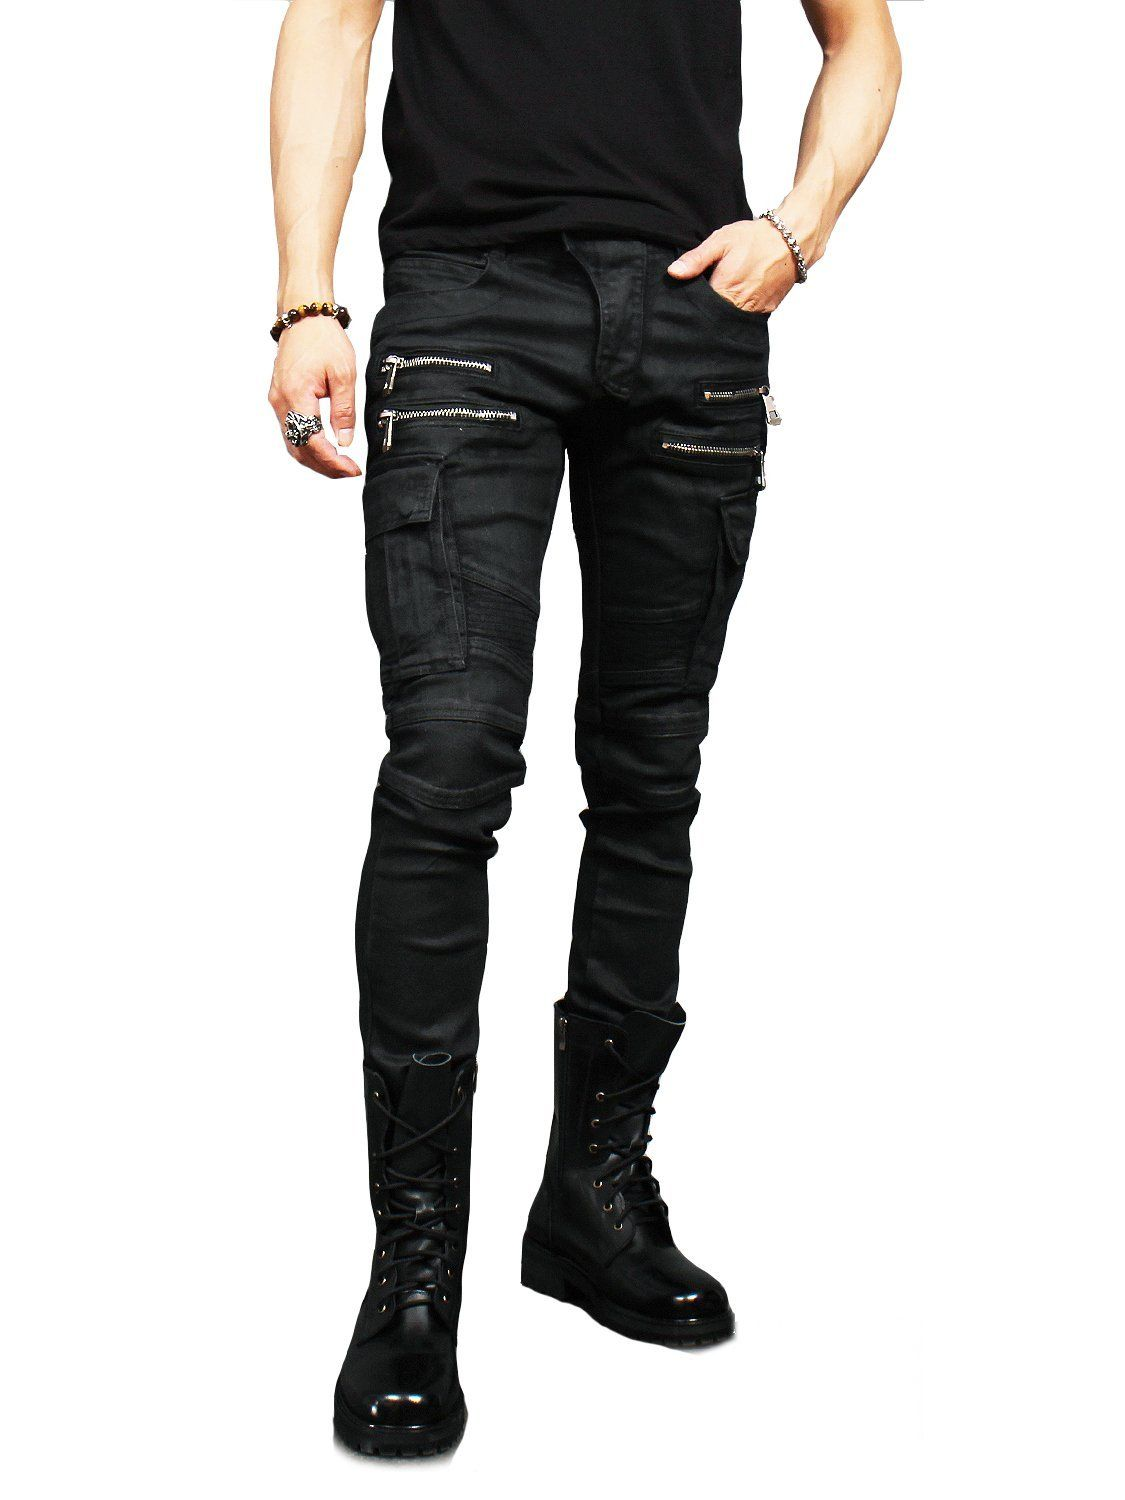 dccfc73865e1f Gentler Men's Fashion Black Wax Coated Zipper Cargo Pocket Bikers ...